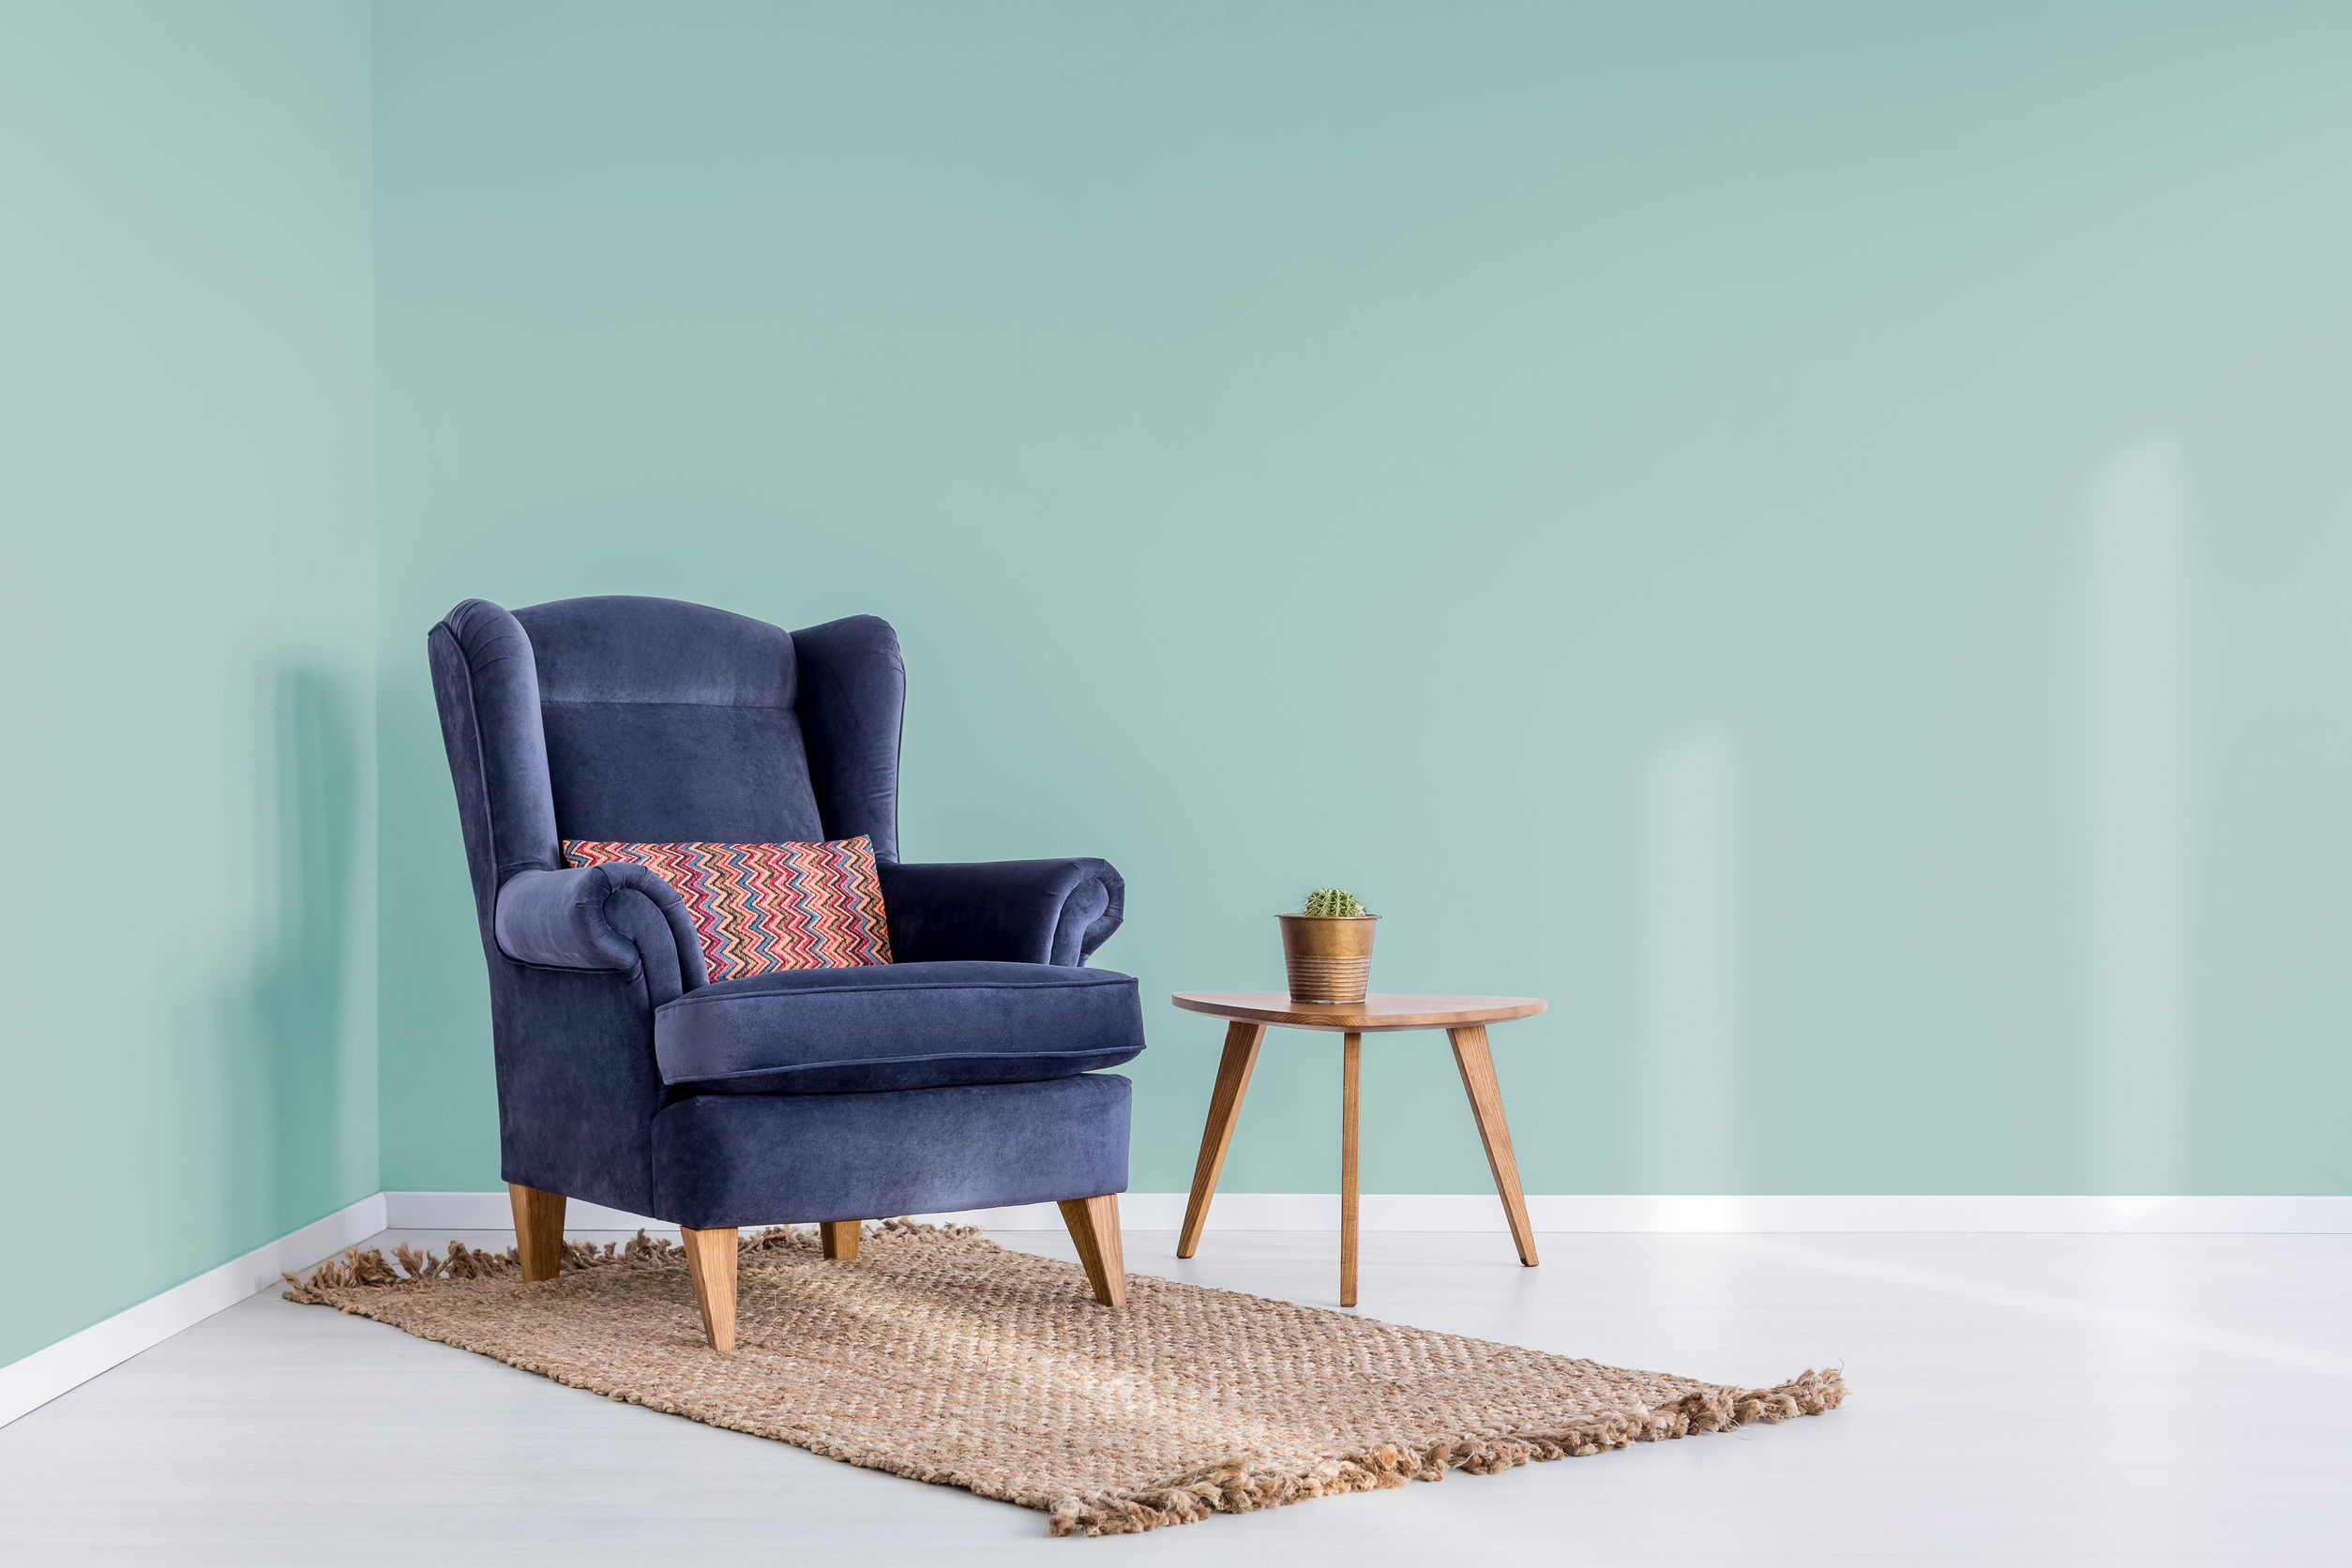 Fresh cactus in copper pot standing on small wooden table next to navy blue chair